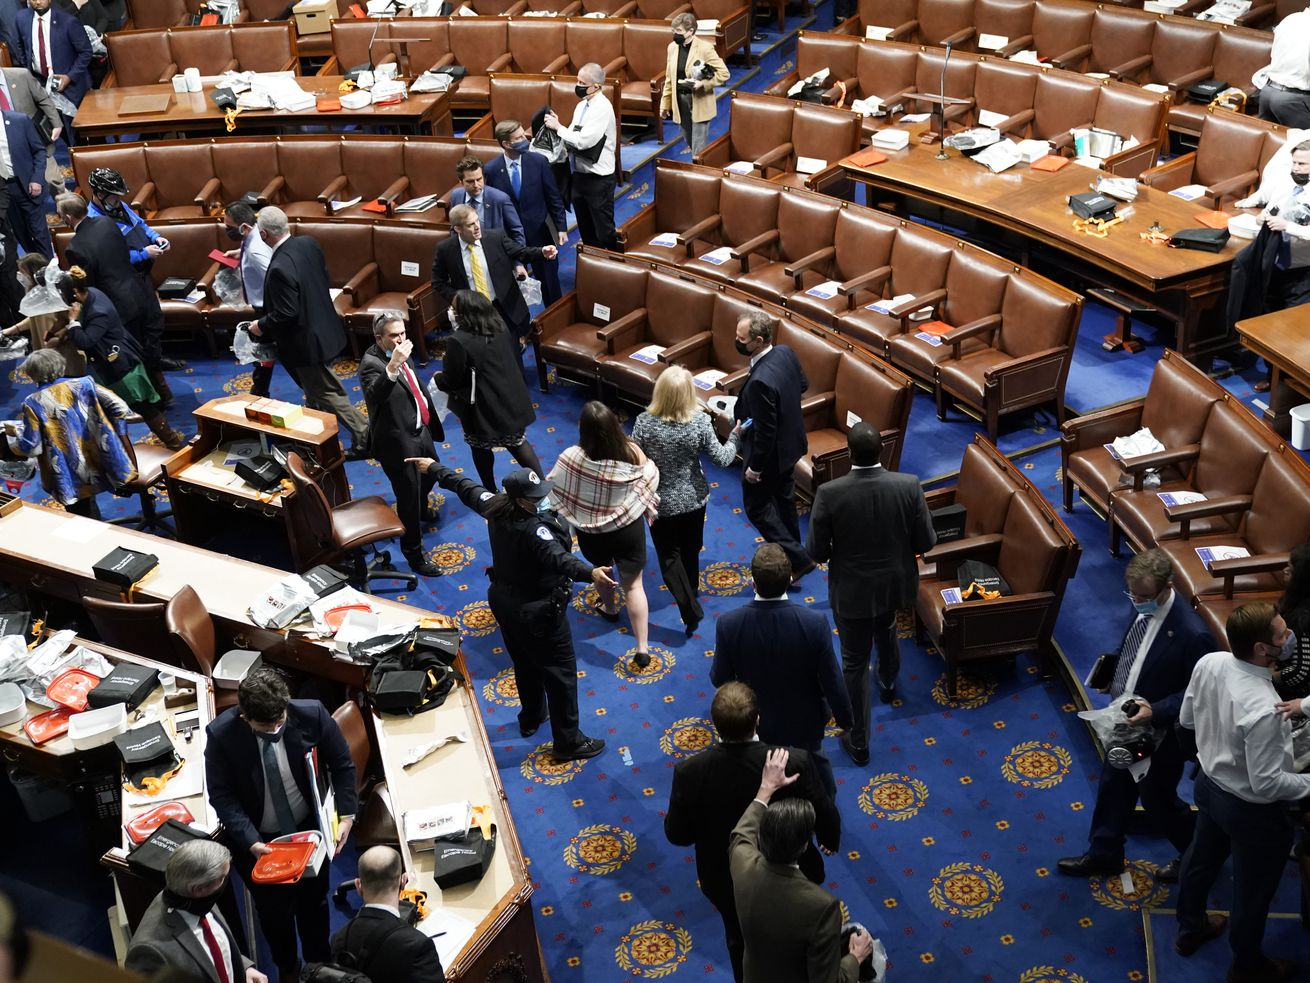 An aerial view of the chamber shows papers strewn across brown leather chairs as lawmakers in suits and formal dresses scramble down aisles and cluster in confusion in front of the speaker's dais.